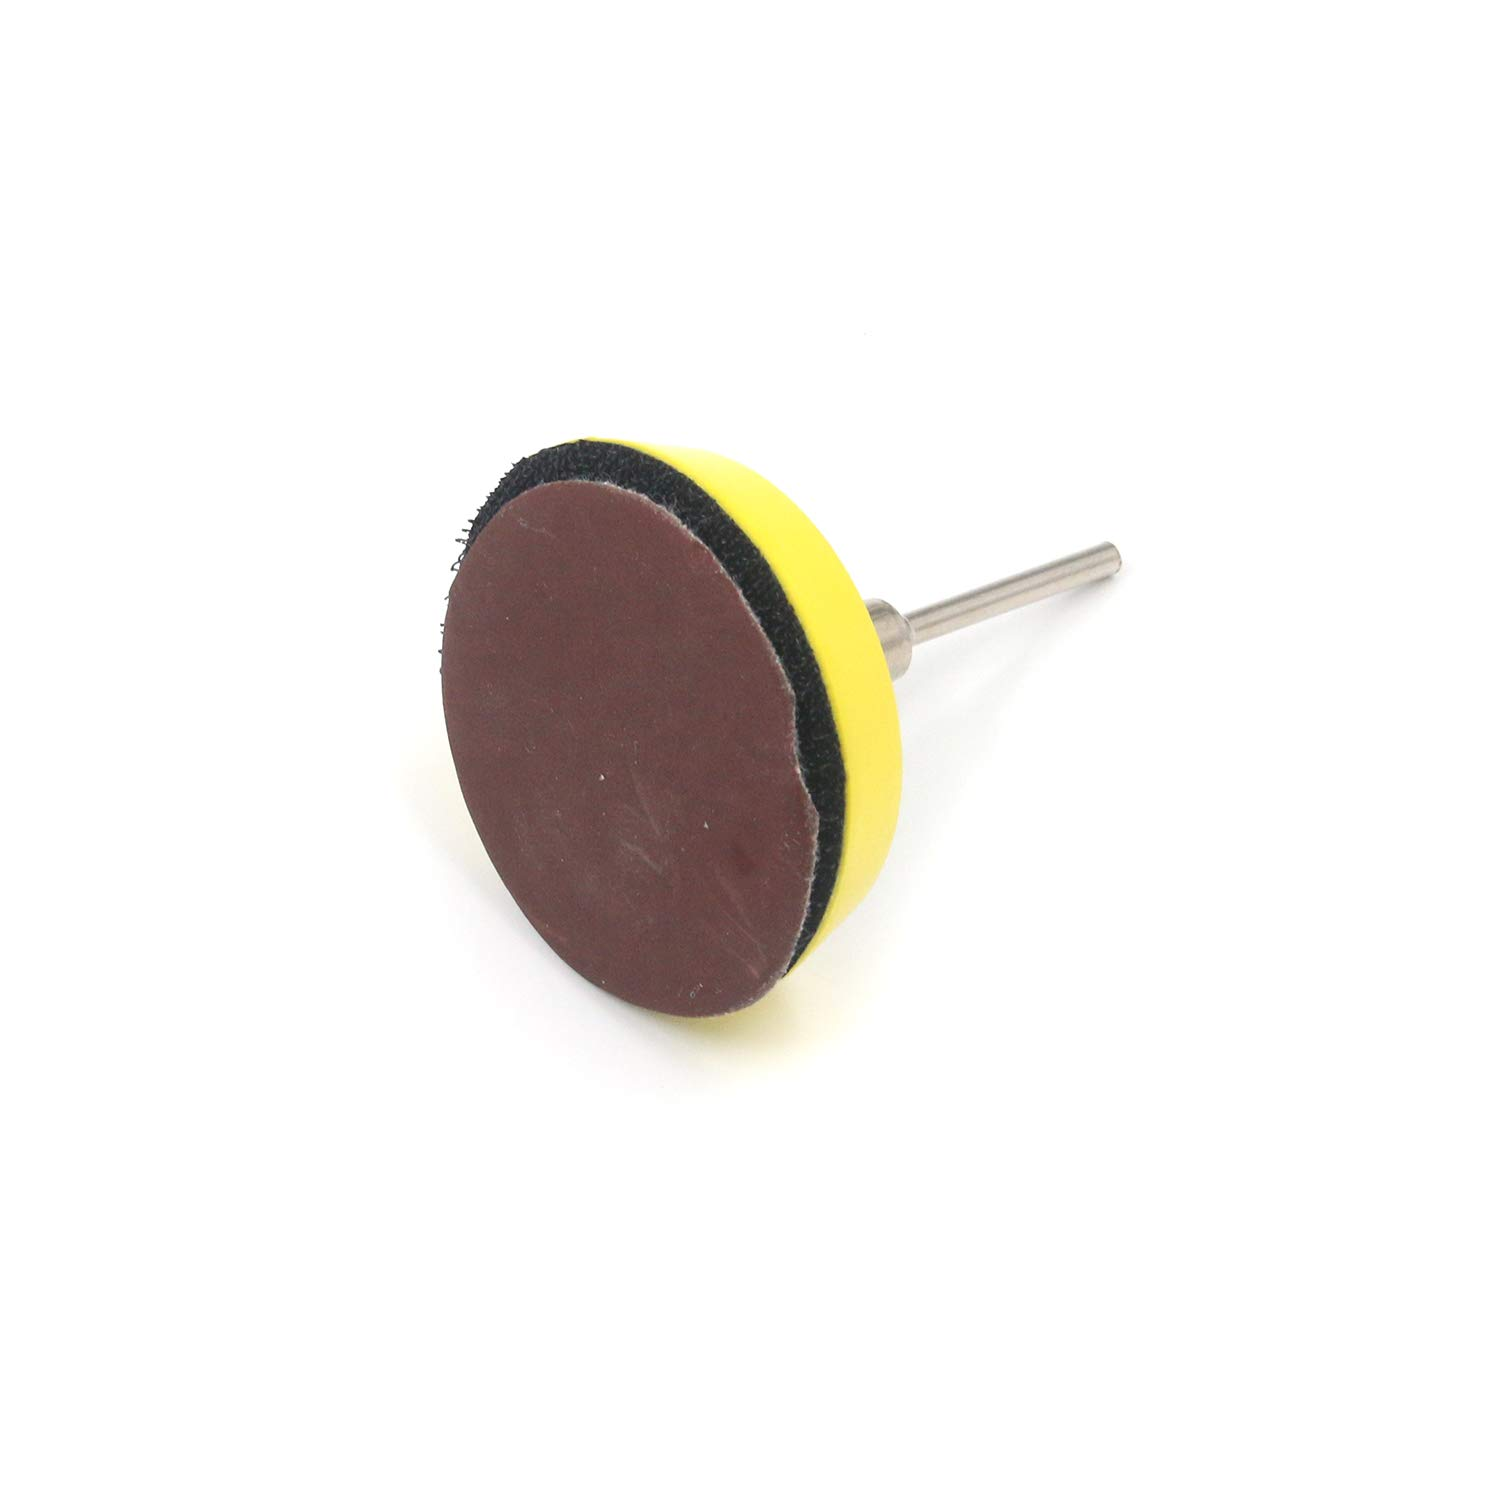 Geesatis 100 PCS 2 Sanding Disc Sandpaper Round Sand Sheets Grit with Backer Plate and Shank